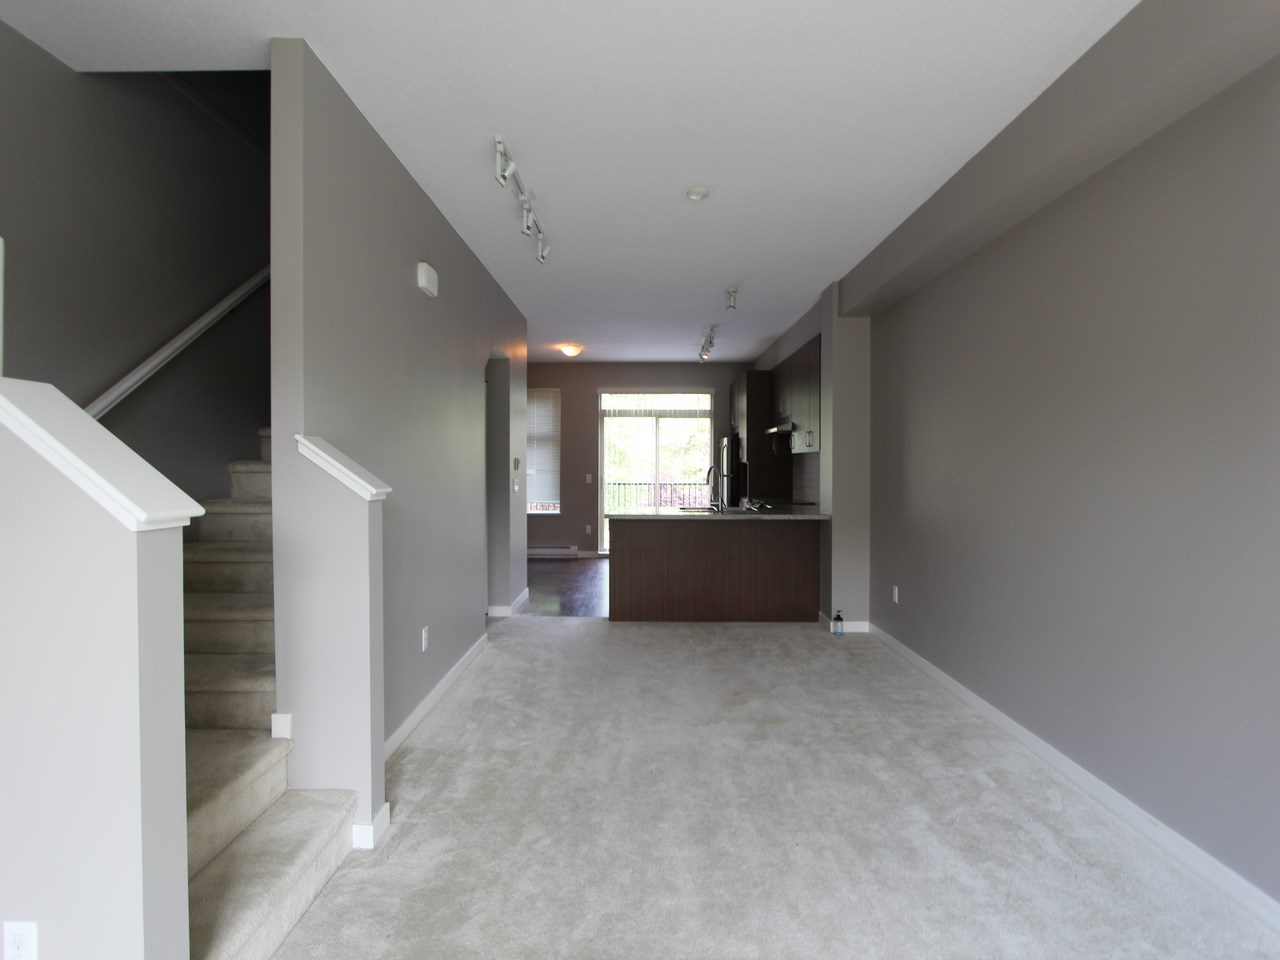 Photo 7: 49 31125 WESTRIDGE Place in Abbotsford: Abbotsford West Townhouse for sale : MLS® # R2176028